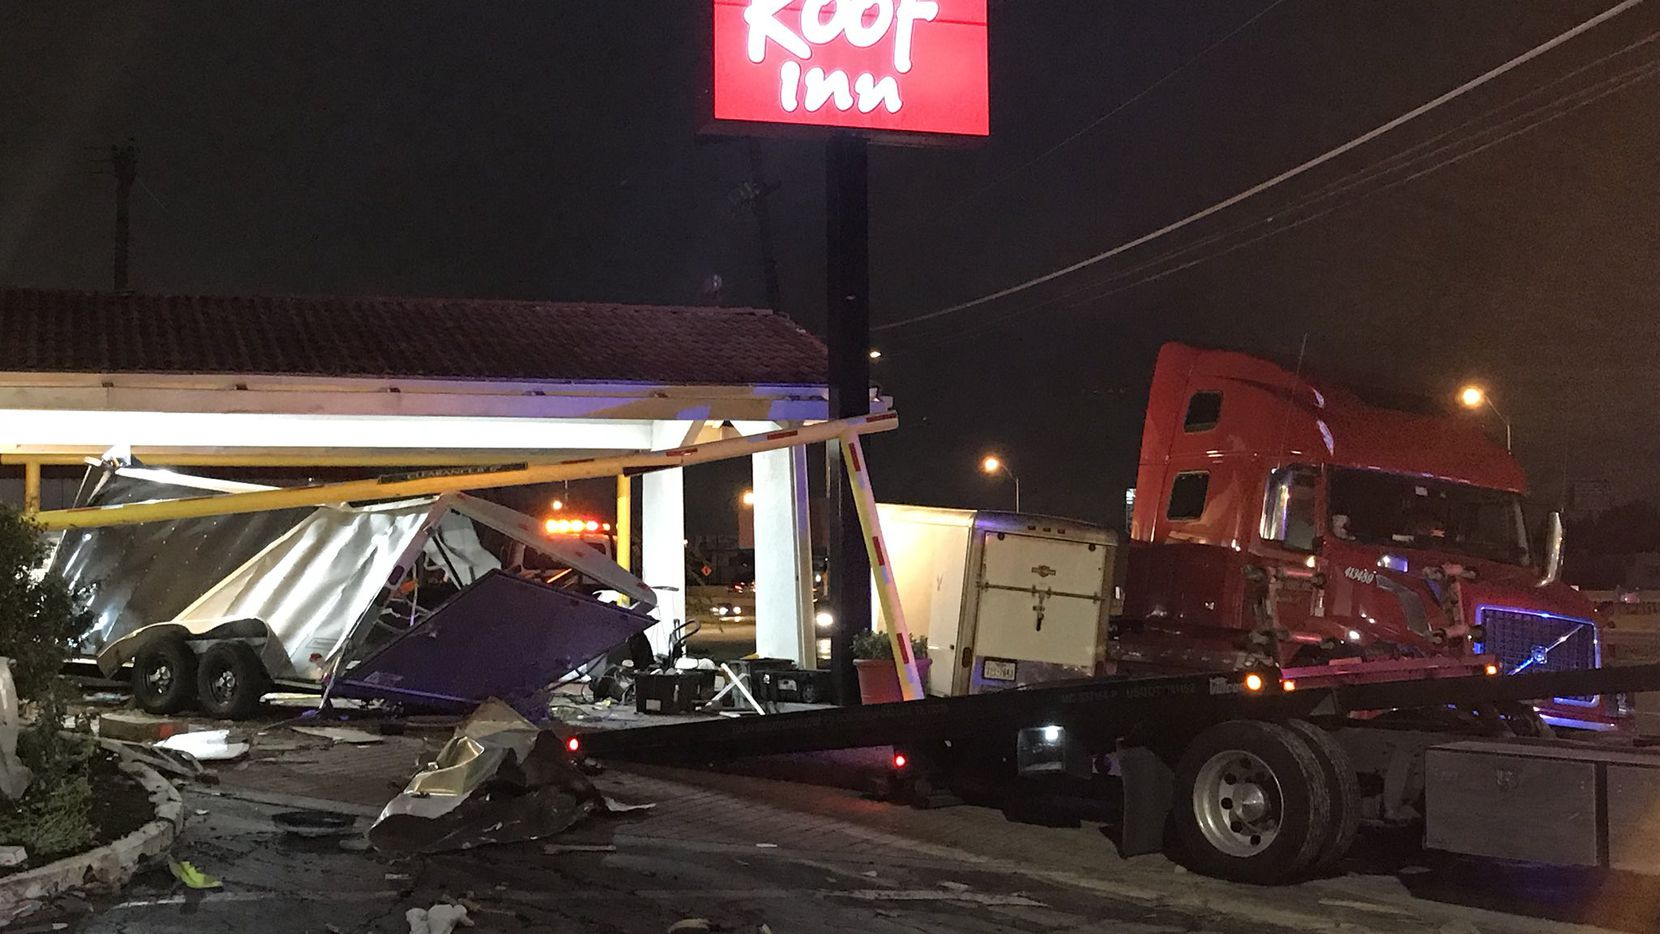 The exterior near the lobby of the Red Roof Inn in Plano was scattered with debris after a wrong-way driver crashed into the awning Tuesday morning.